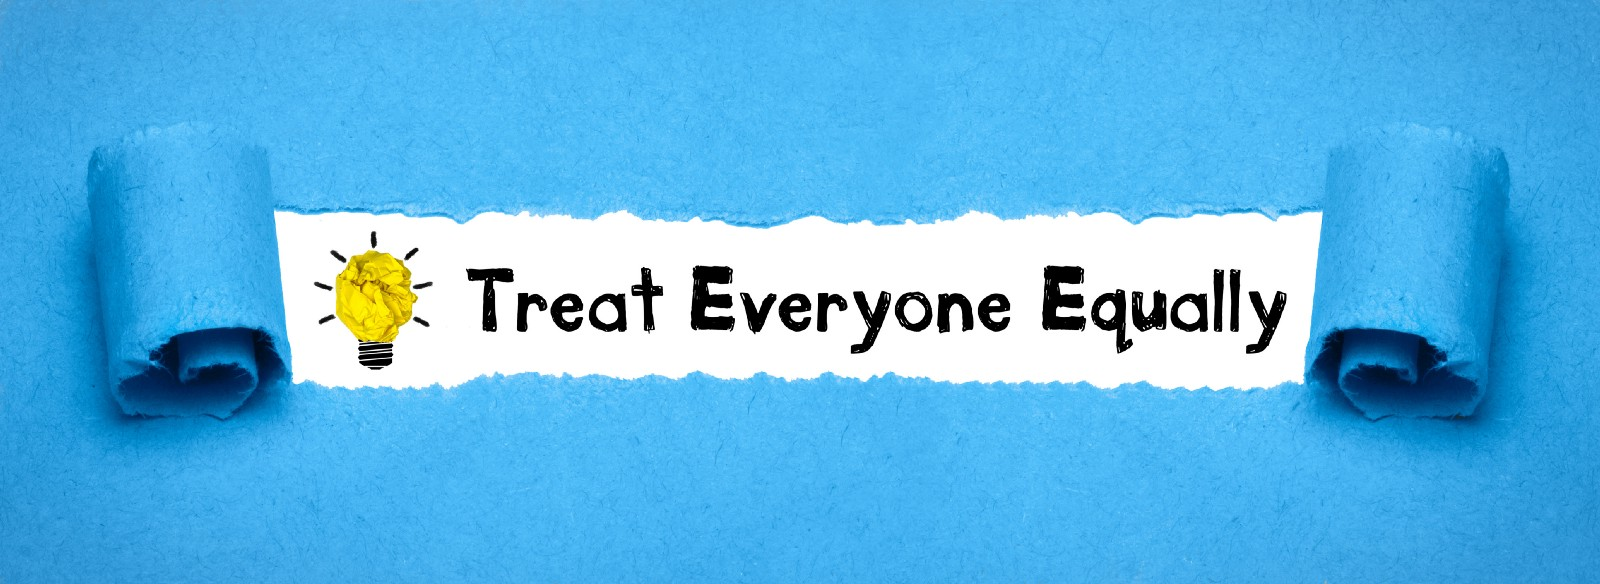 "Cartoon lightbulb with the words ""Treat Everyone Equally"" on a blue background"